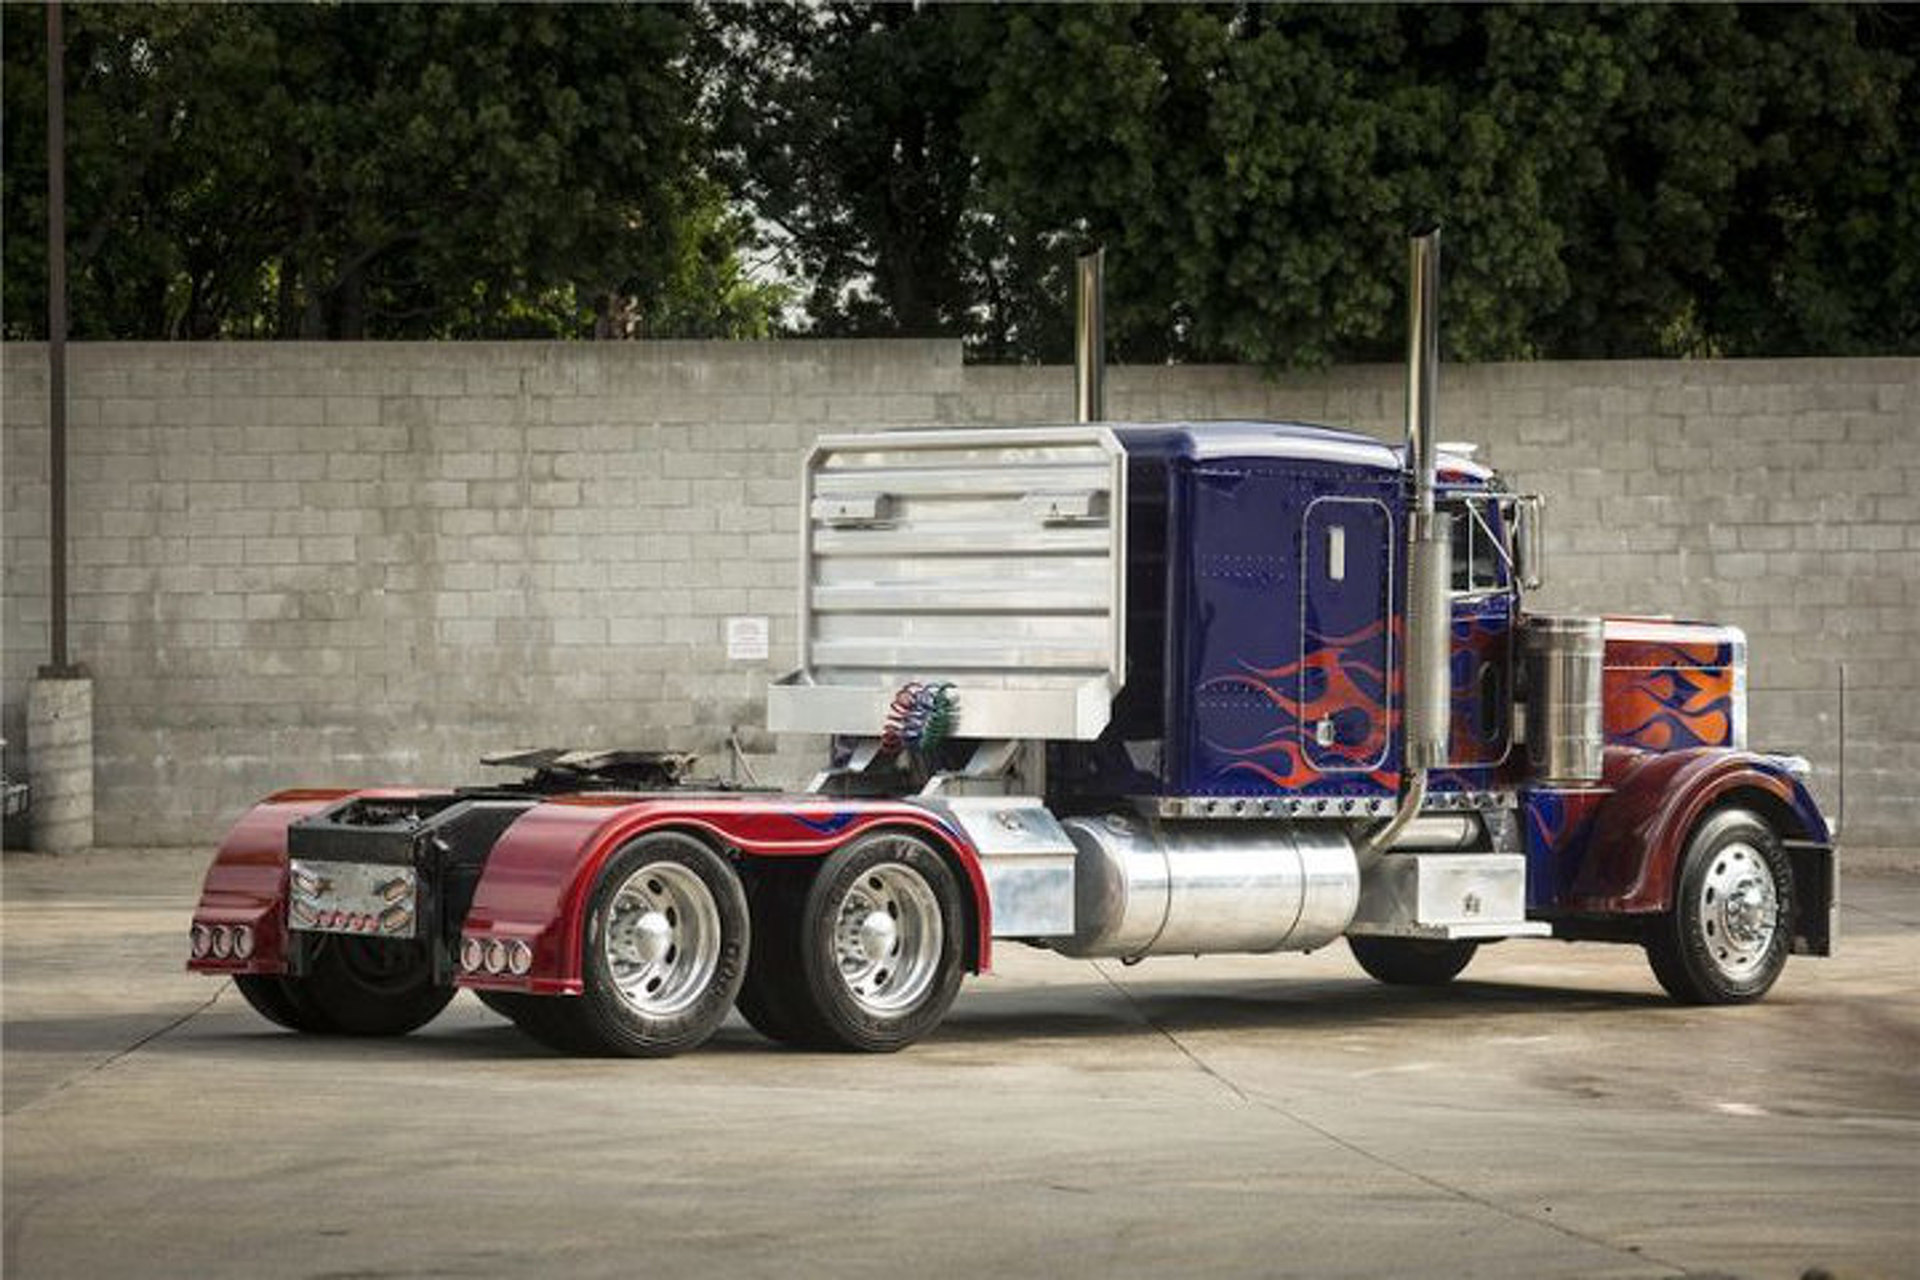 """Optimus Prime and Bumblebee Vehicles from """"Transformers"""" Headed to Auction"""